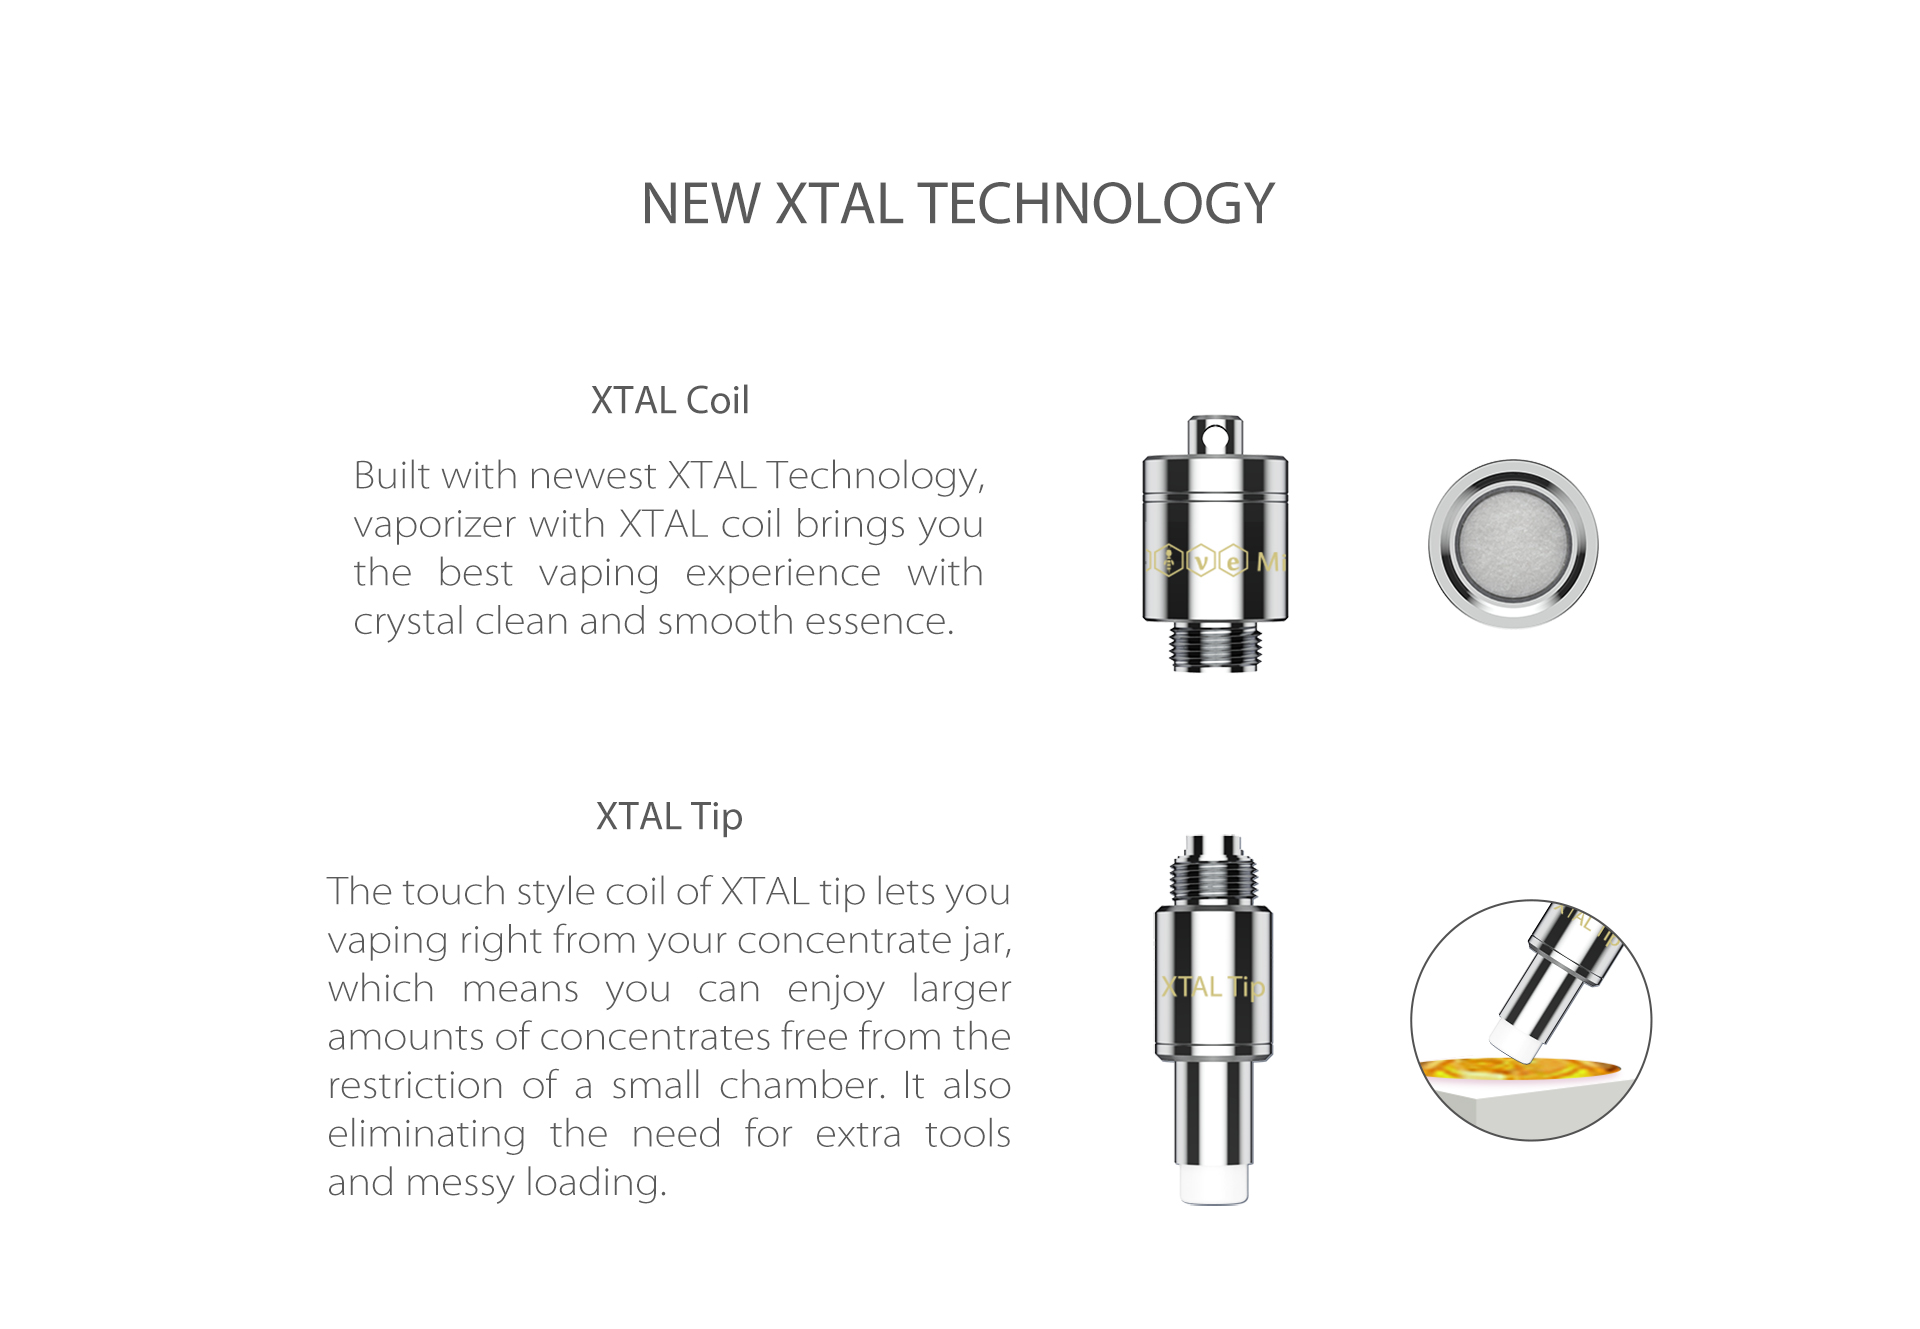 Yocan Dive Mini vaporizer comes with new XTAL technology.